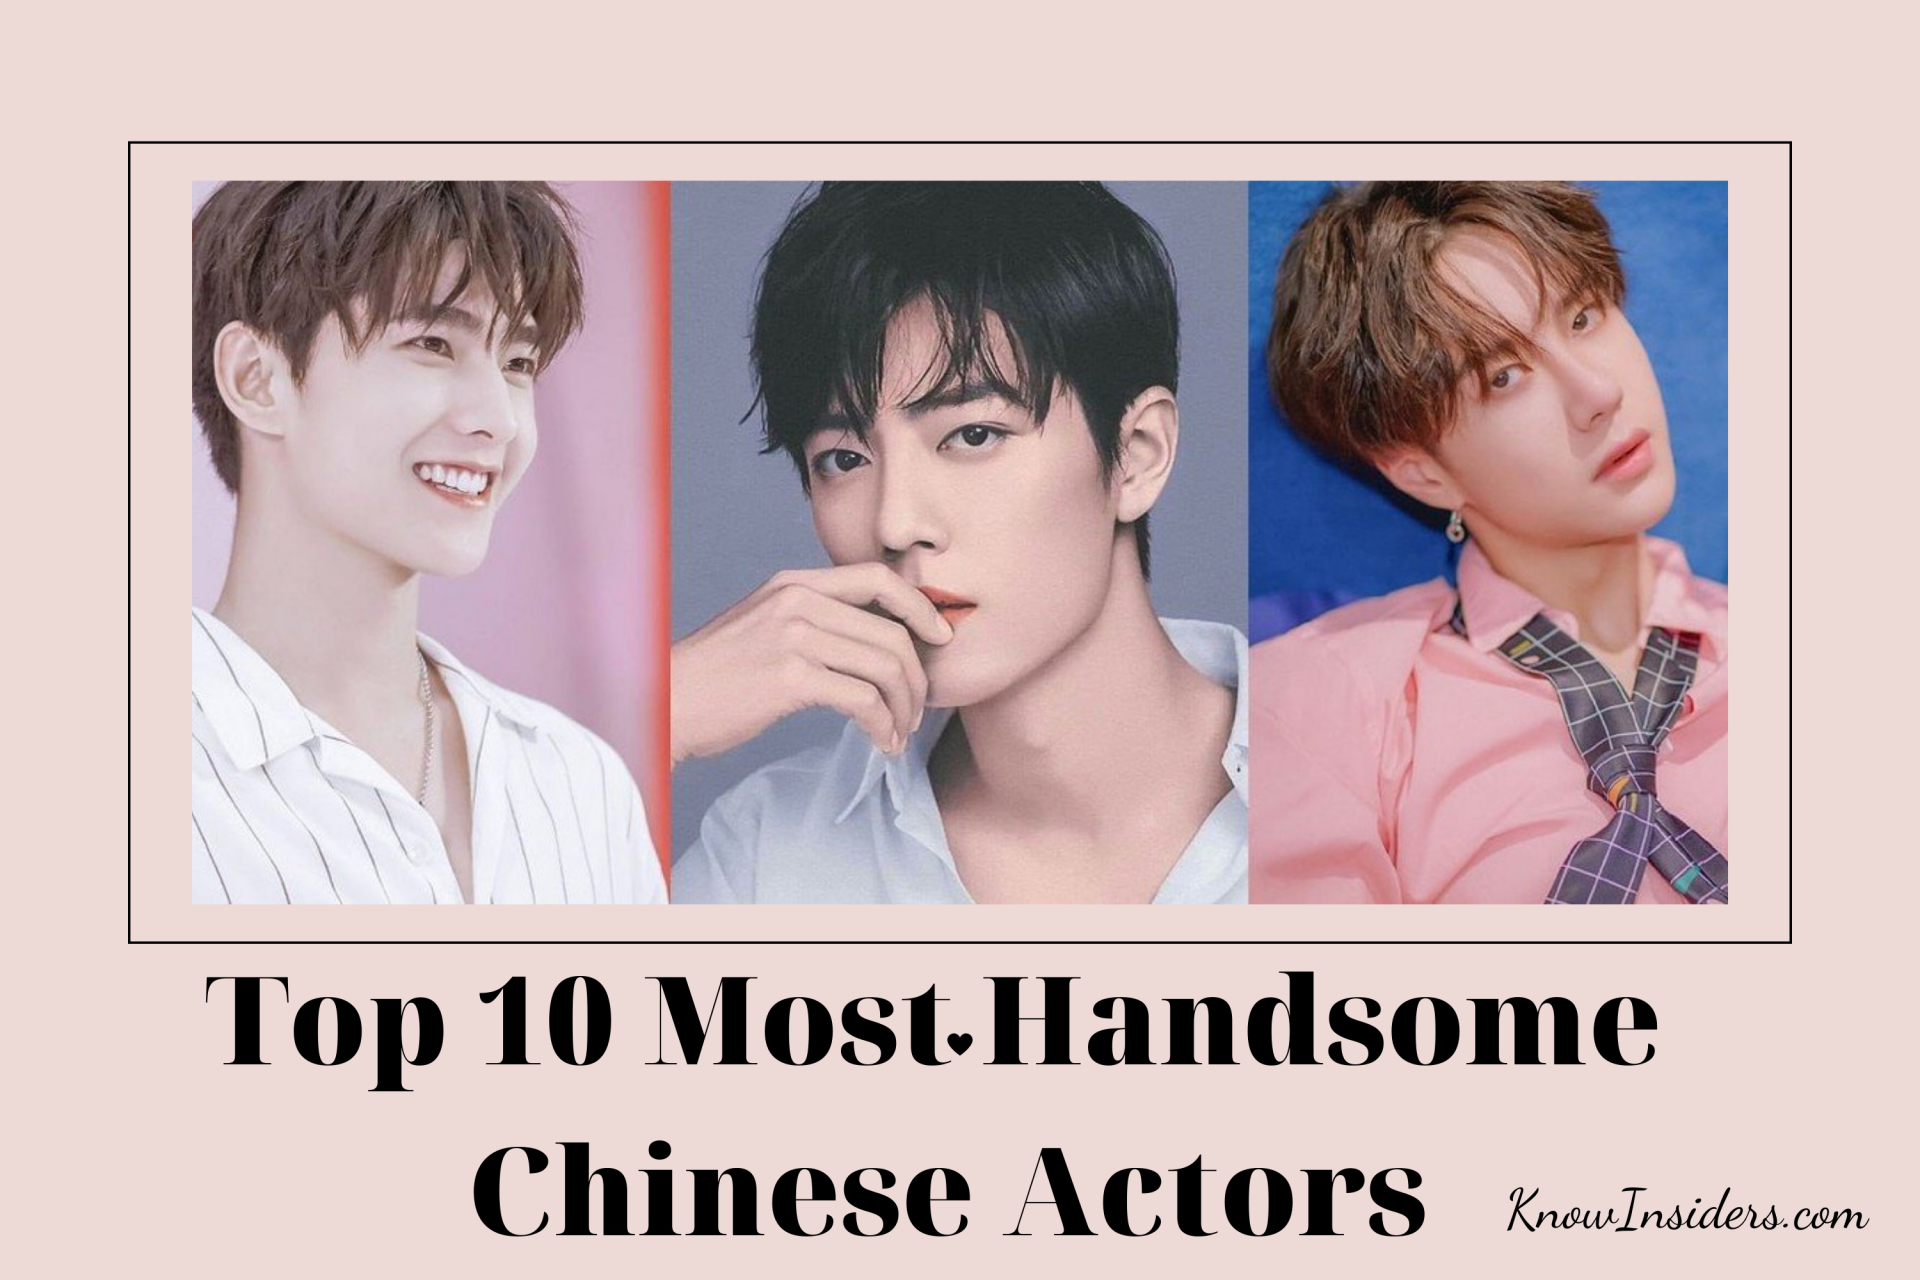 Top 10 Most Handsome Chinese Actors - Updated